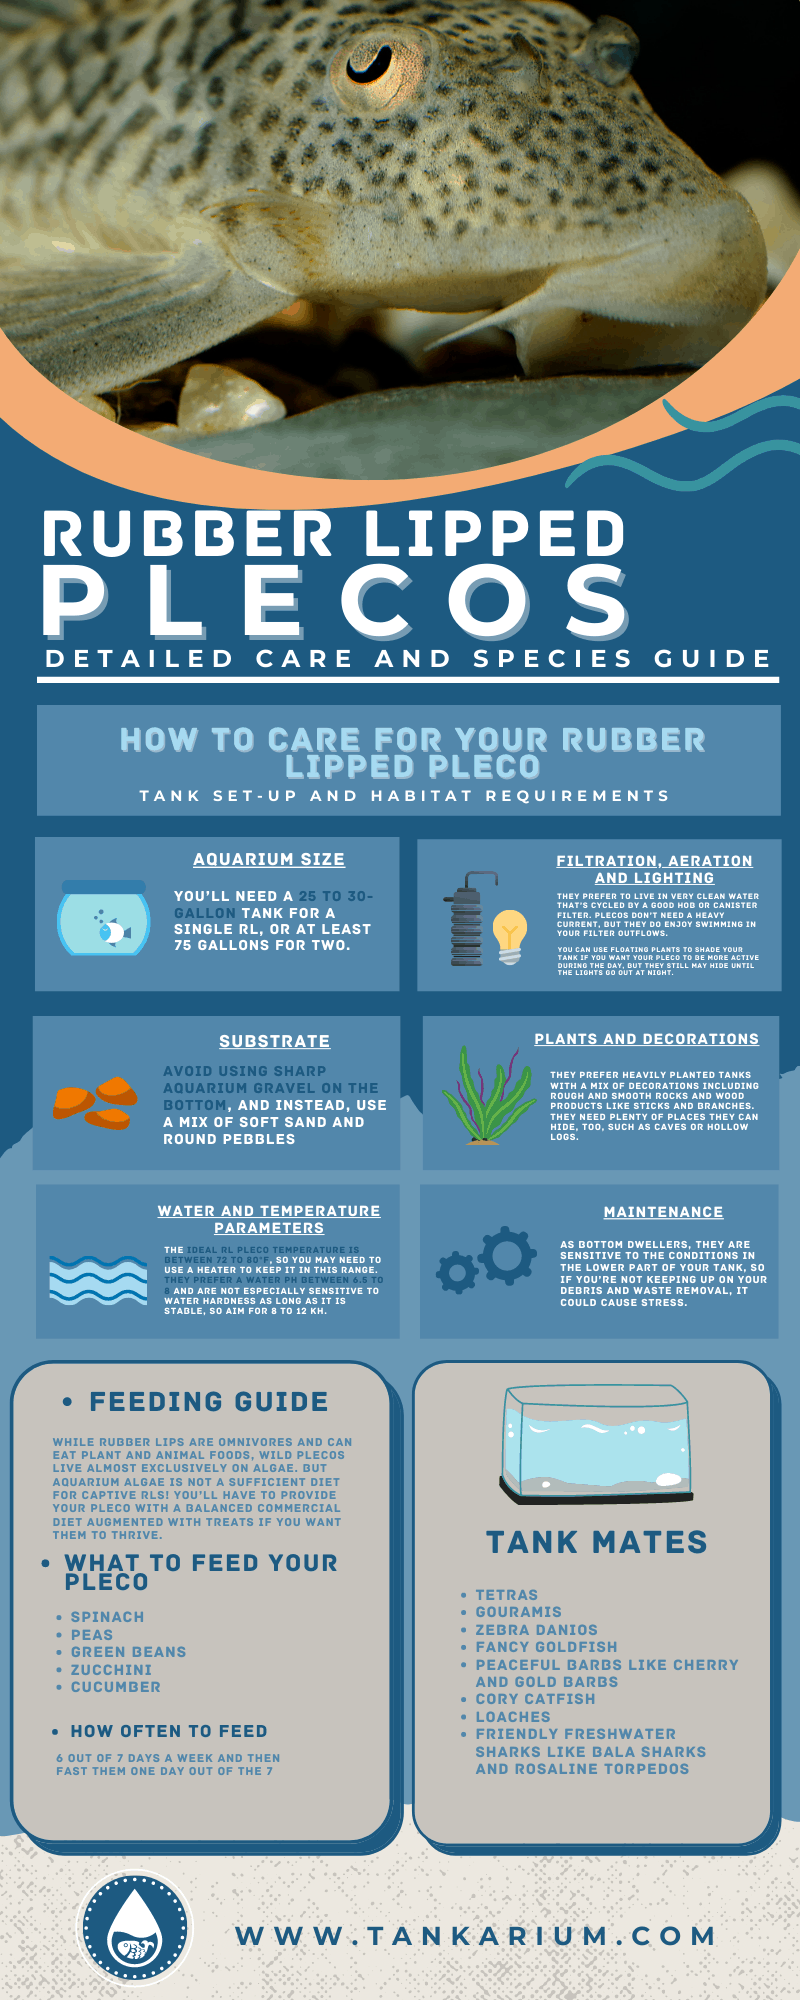 Rubber Lipped Plecos_ Detailed Care and Species Guide- infographic